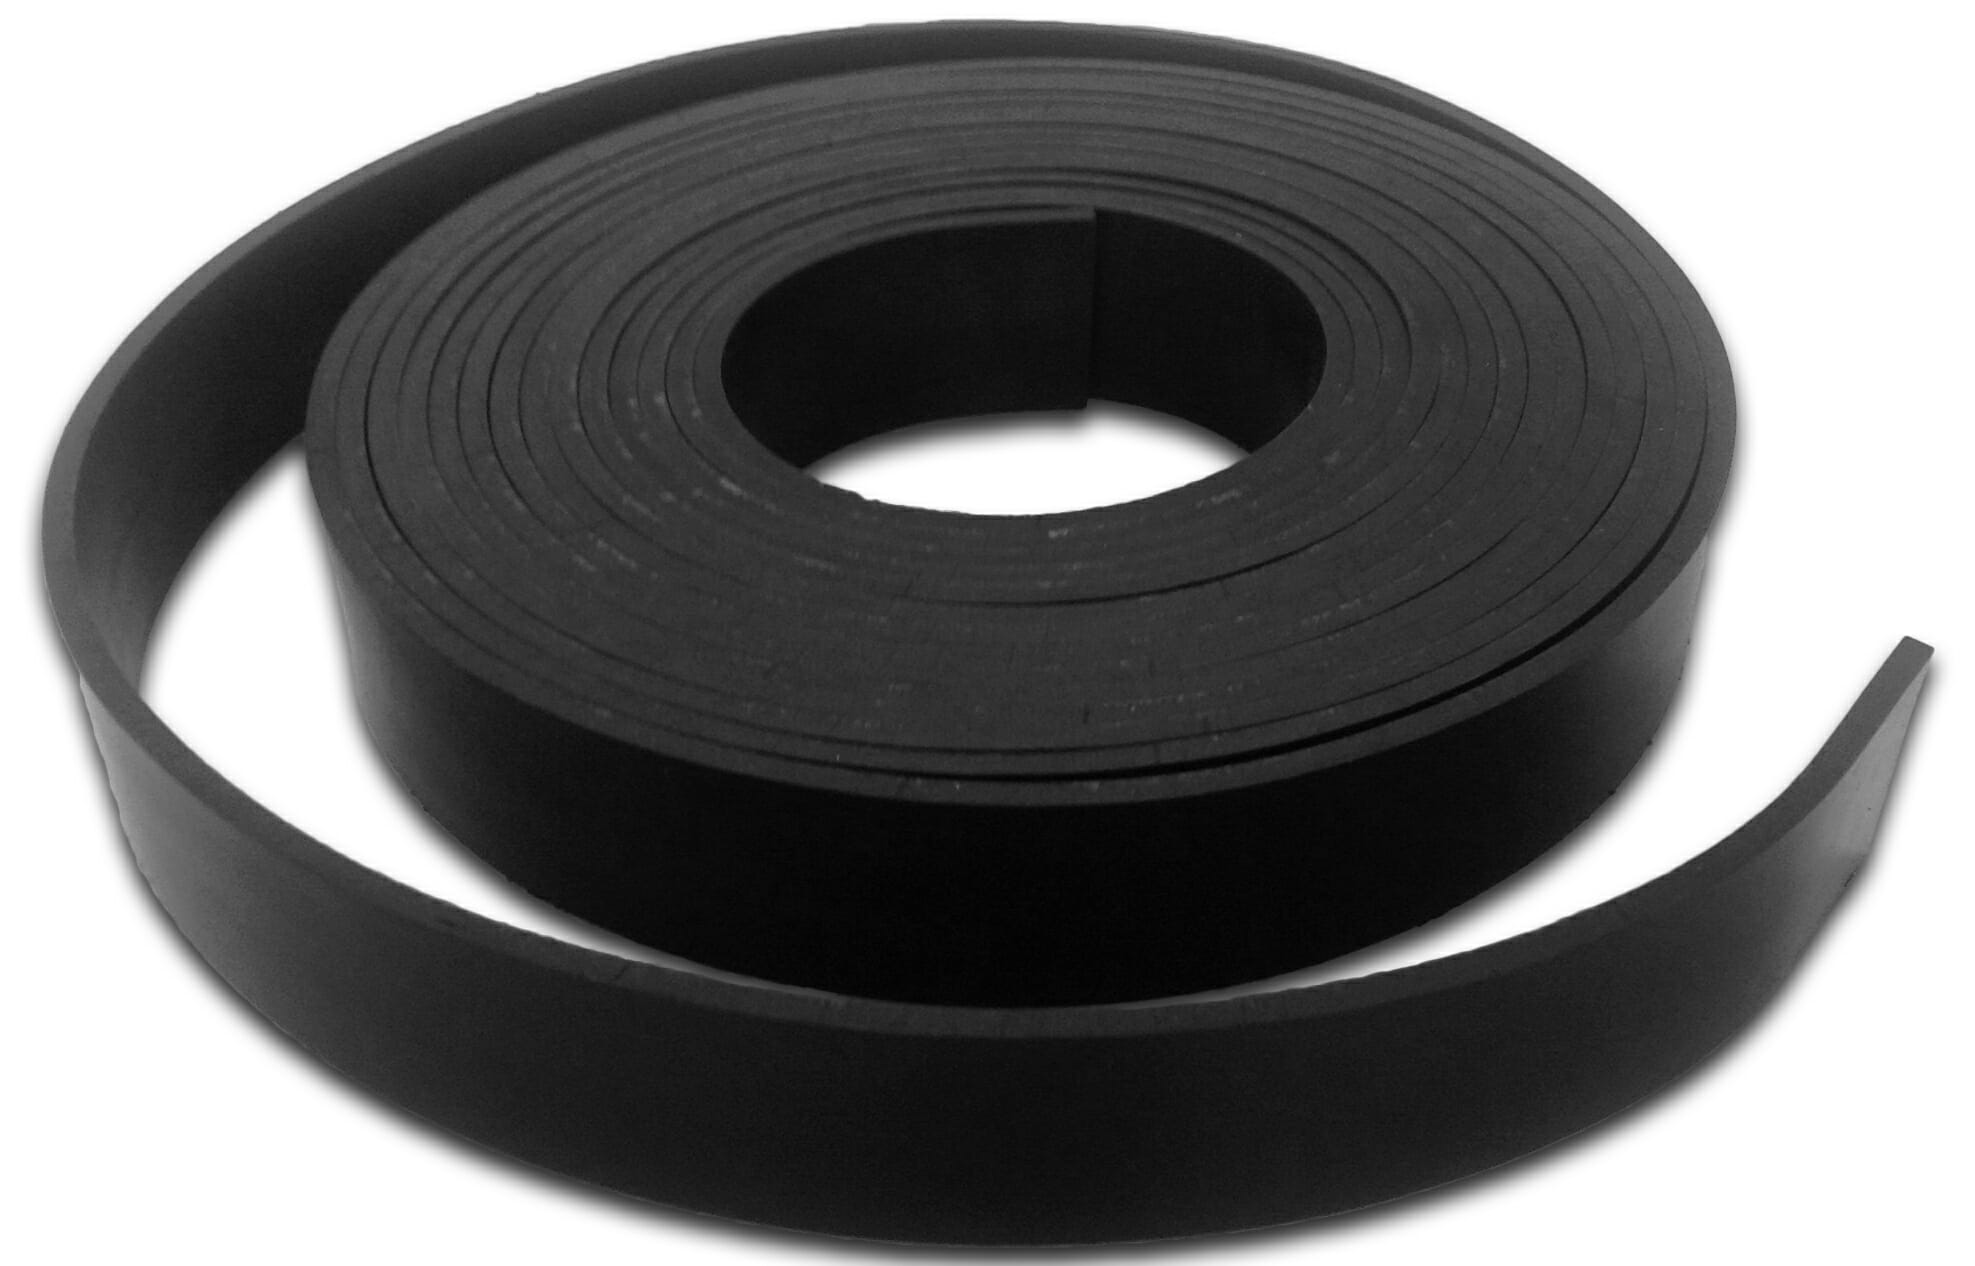 Thick rubber strip